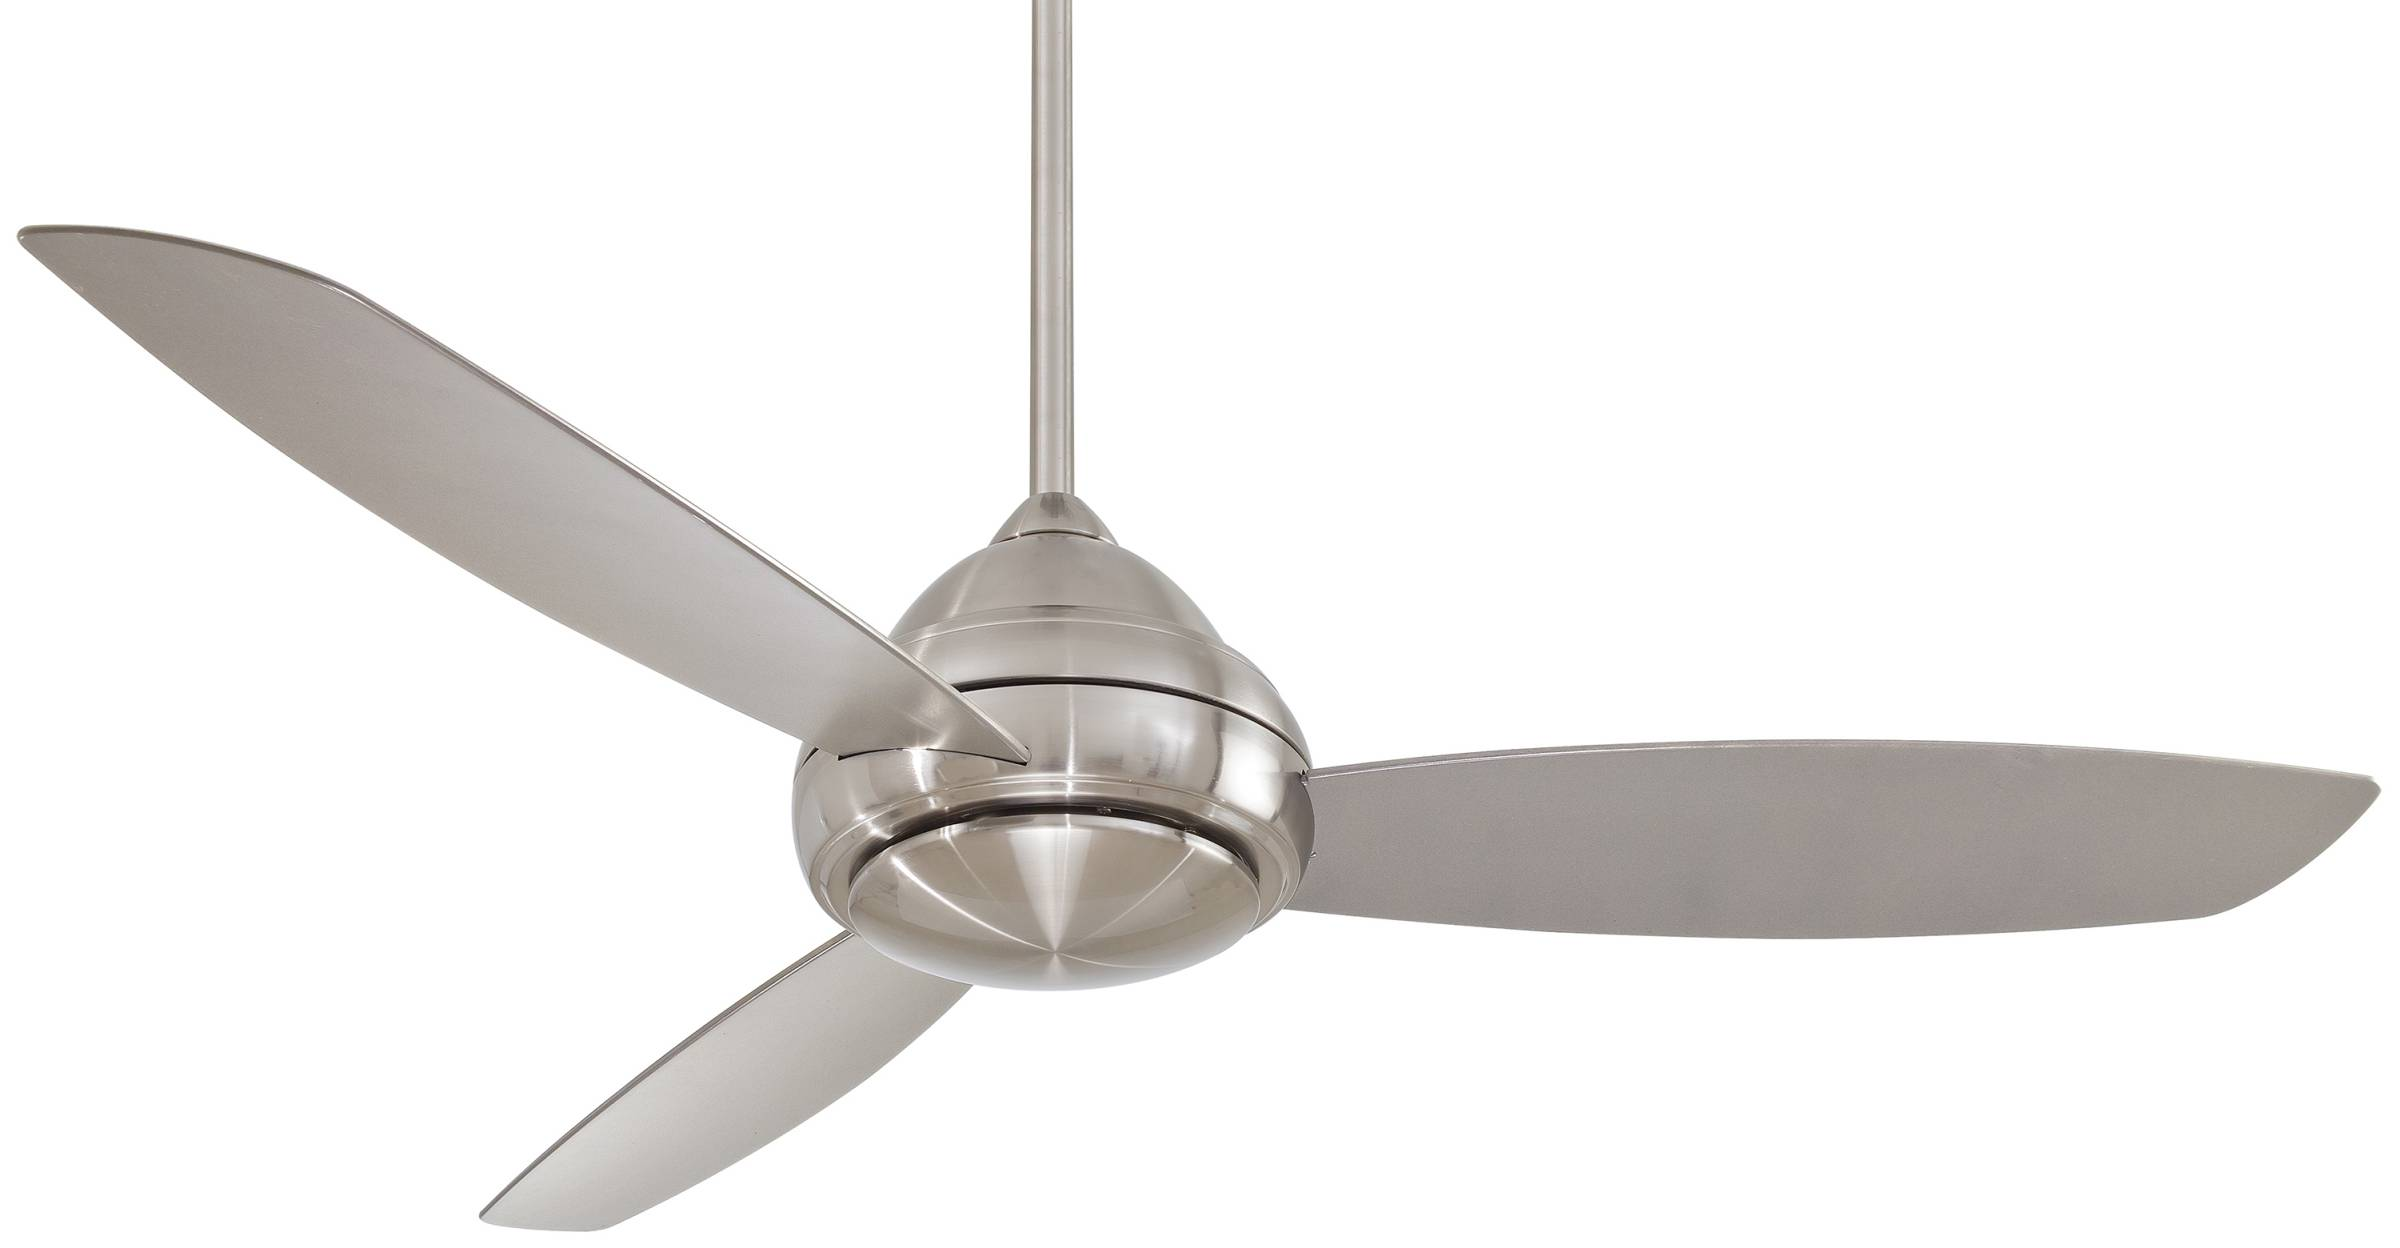 10 Reasons To Install Stainless Steel Outdoor Ceiling Fans Warisan Fan Wiringceilingfan1jpg Photo 1